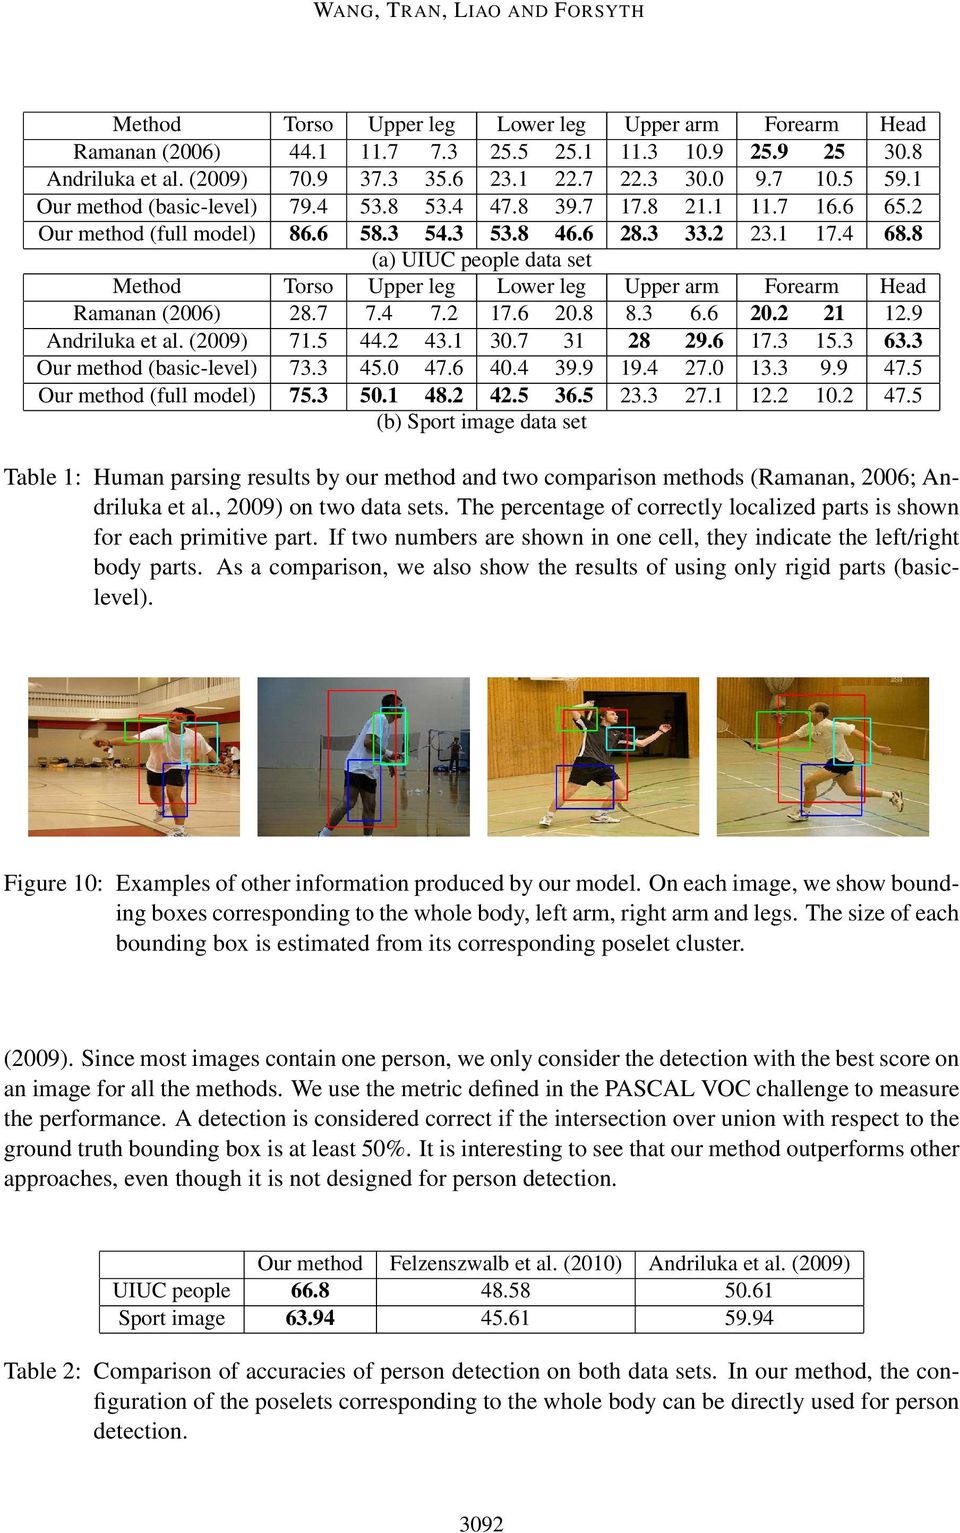 8 (a) UIUC people data set Method Torso Upper leg Lower leg Upper arm Forearm Head Ramanan (2006) 28.7 7.4 7.2 17.6 20.8 8.3 6.6 20.2 21 12.9 Andriluka et al. (2009) 71.5 44.2 43.1 30.7 31 28 29.6 17.